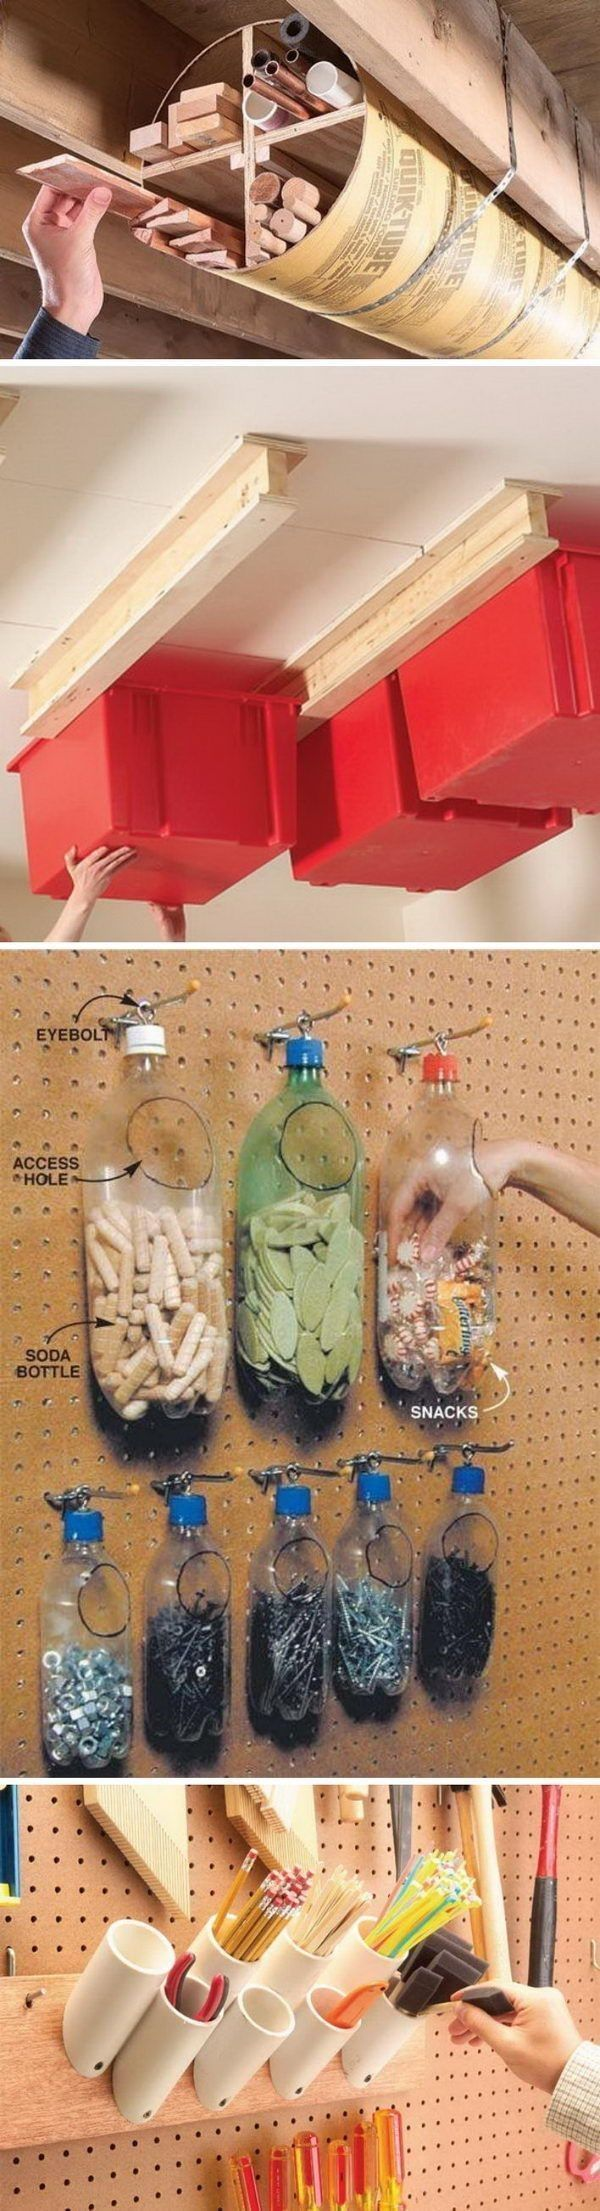 Shed Plans - Clever Garage Storage and Organization Ideas Now You Can Build ANY Shed In A Weekend Even If You've Zero Woodworking Experience! #shedorganizationtips #shedplans #organizationideas